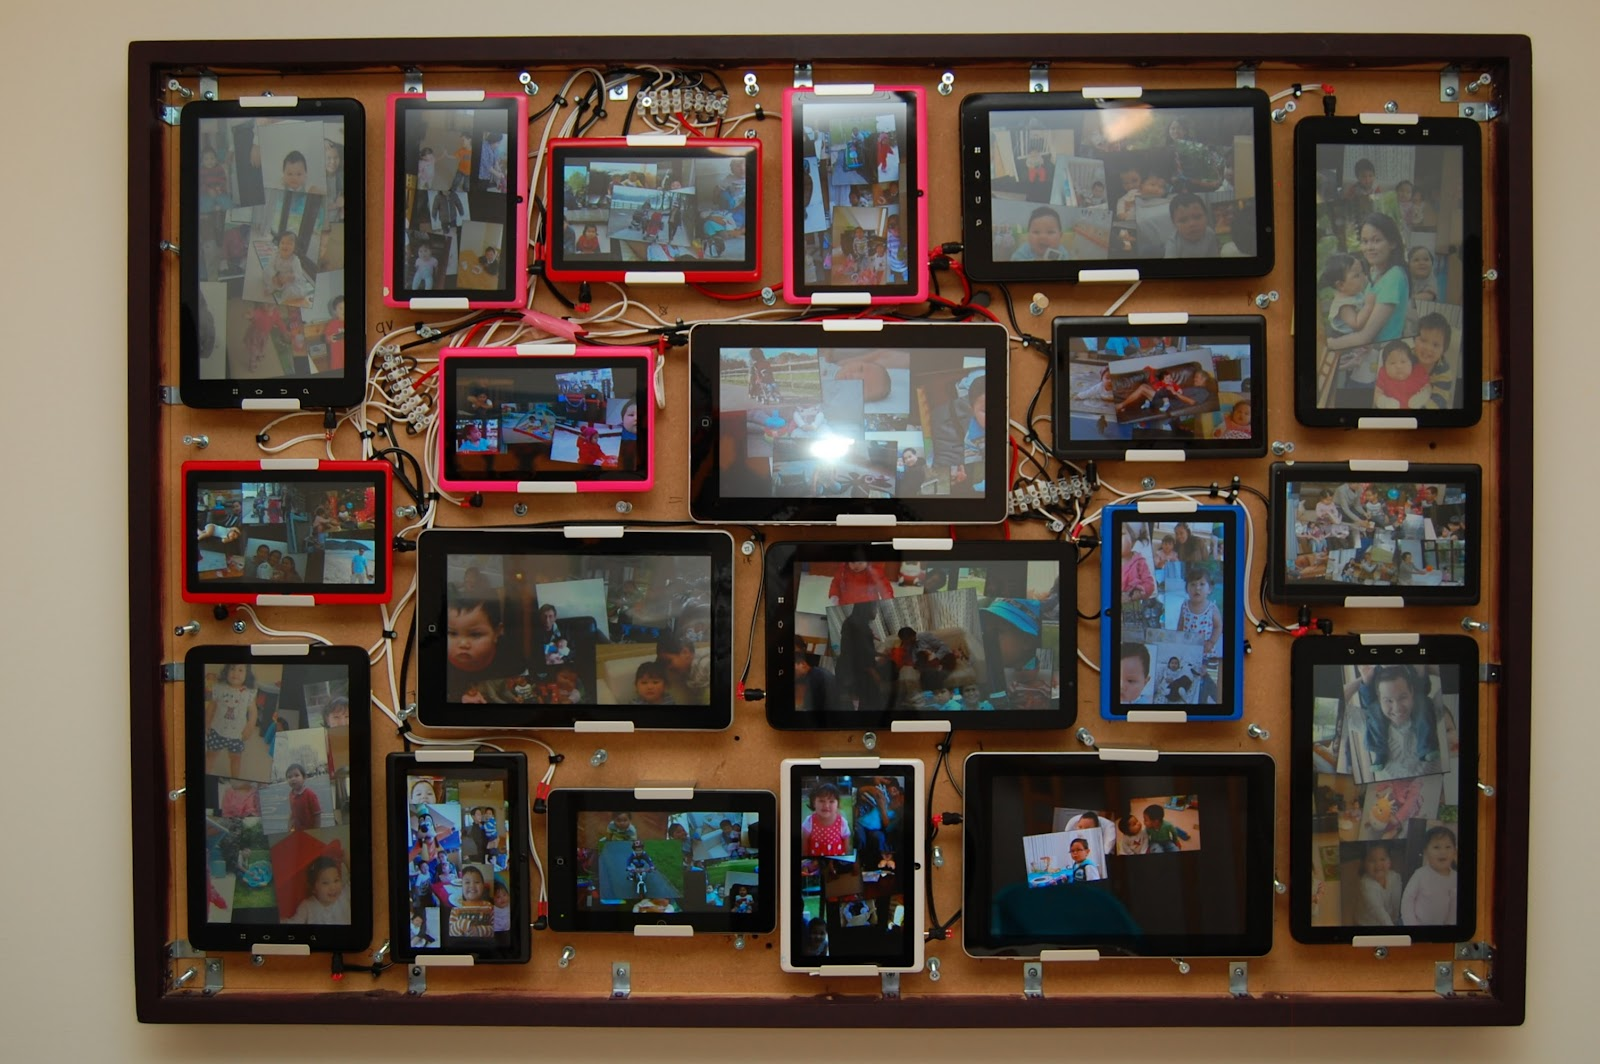 Minn\'s Blog: Custom Photo Frame Display From Multiple Android Tablets